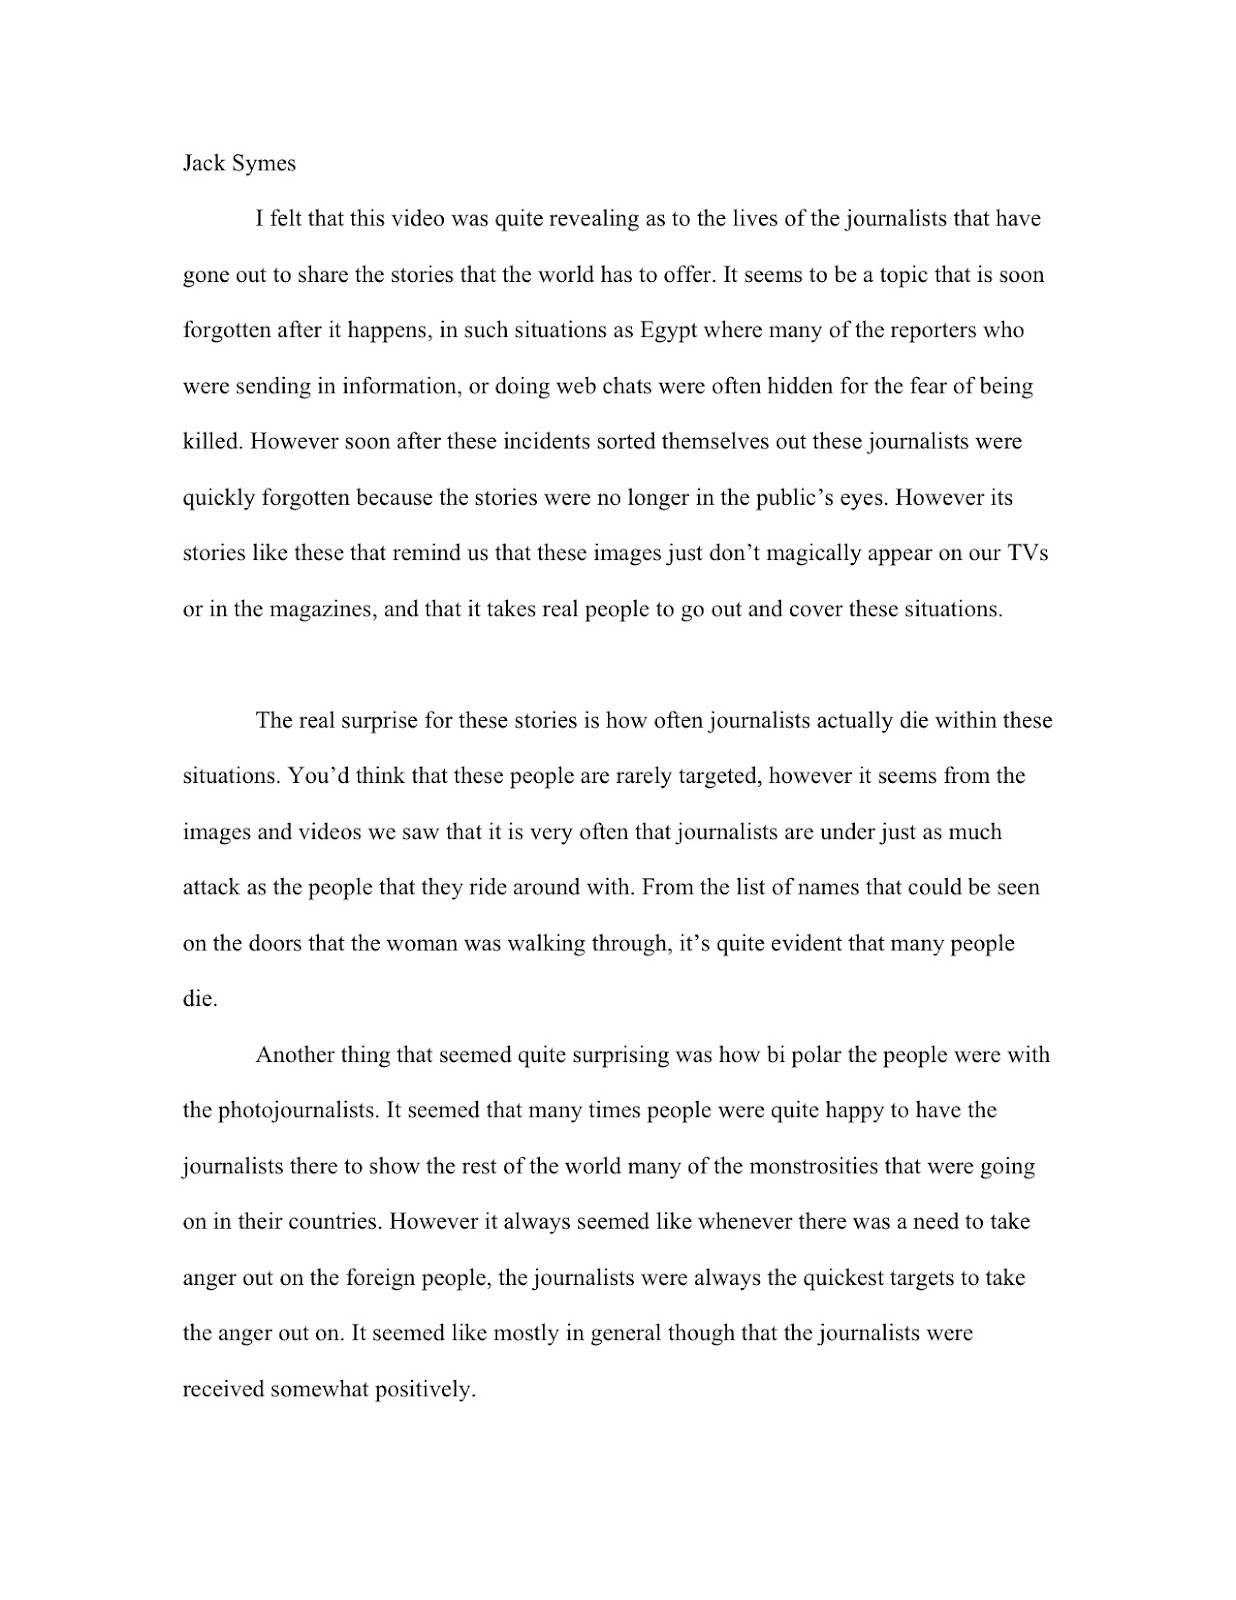 Essay About Responsible Journalism